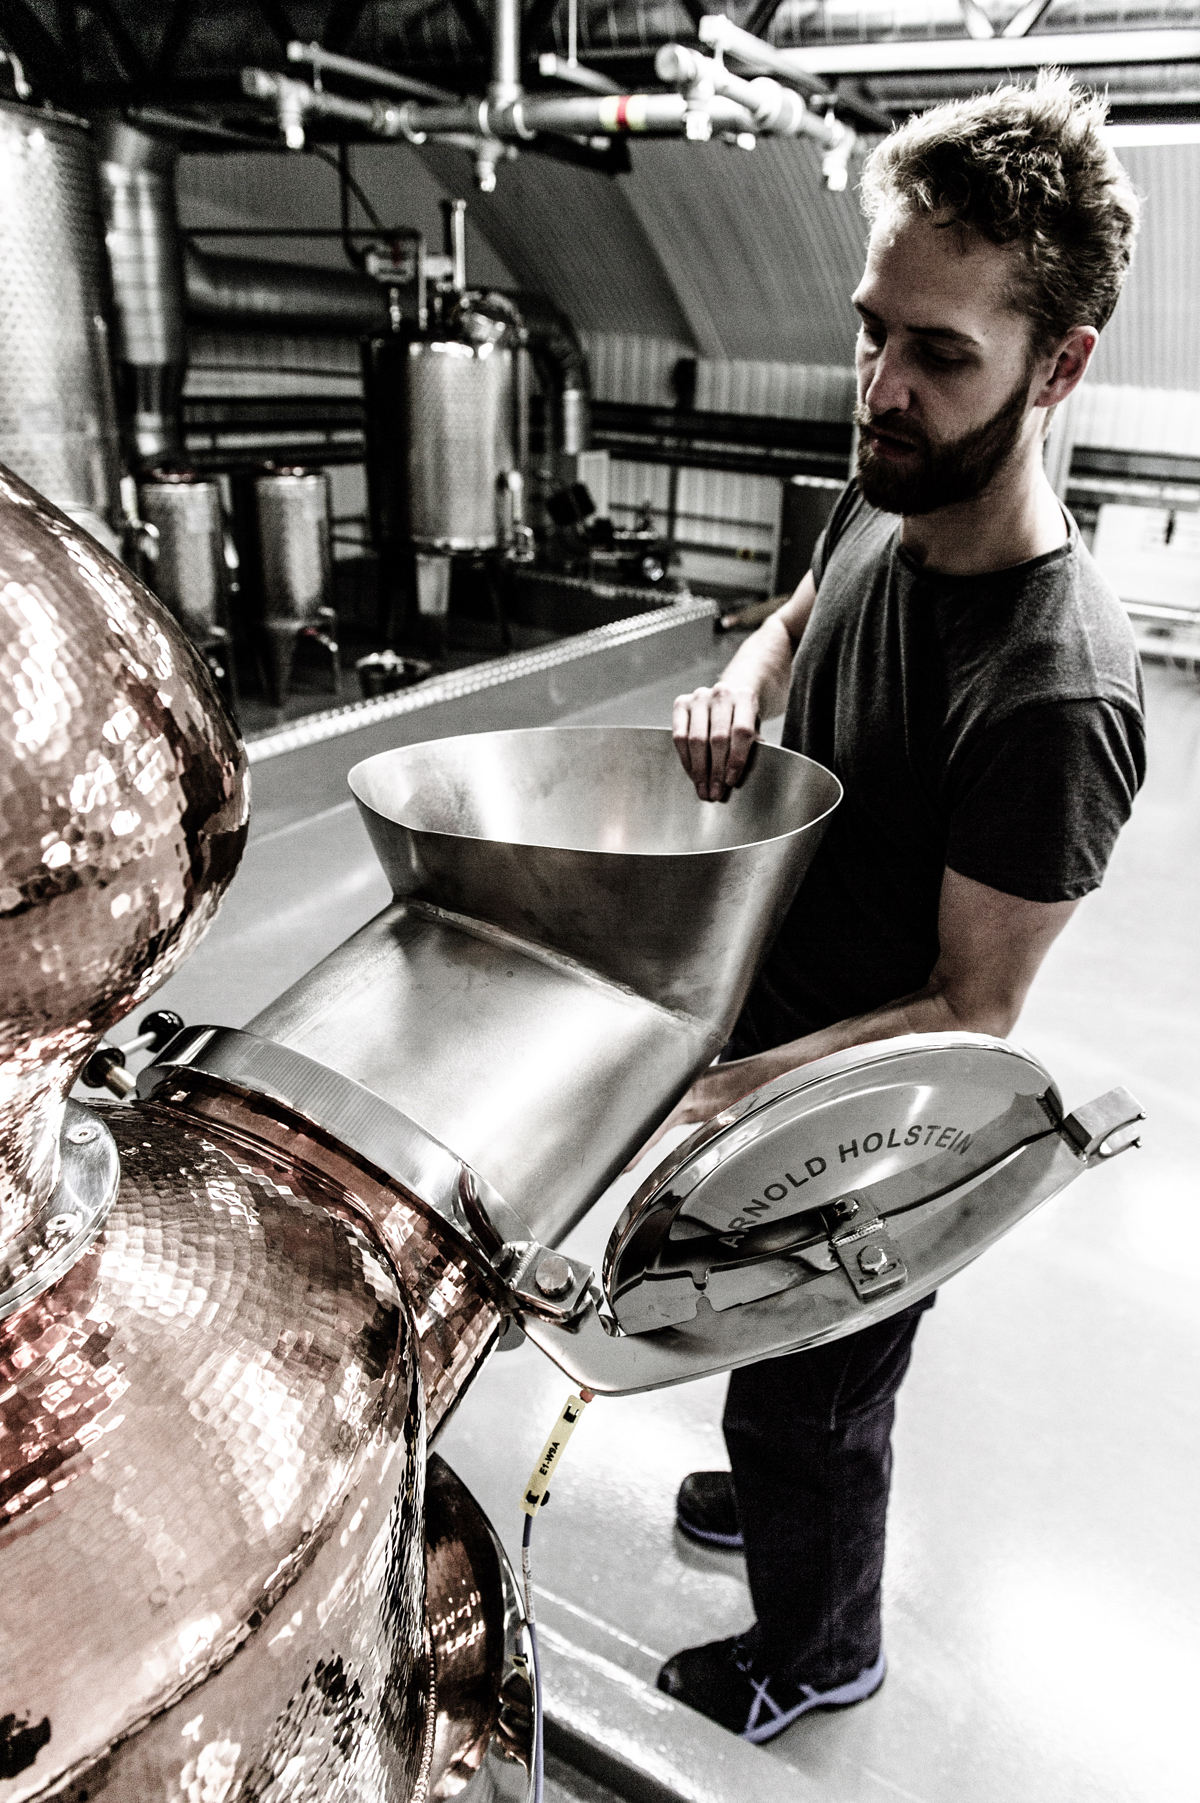 Above and top: Distillery manager Matt Lovell at work at Our/London